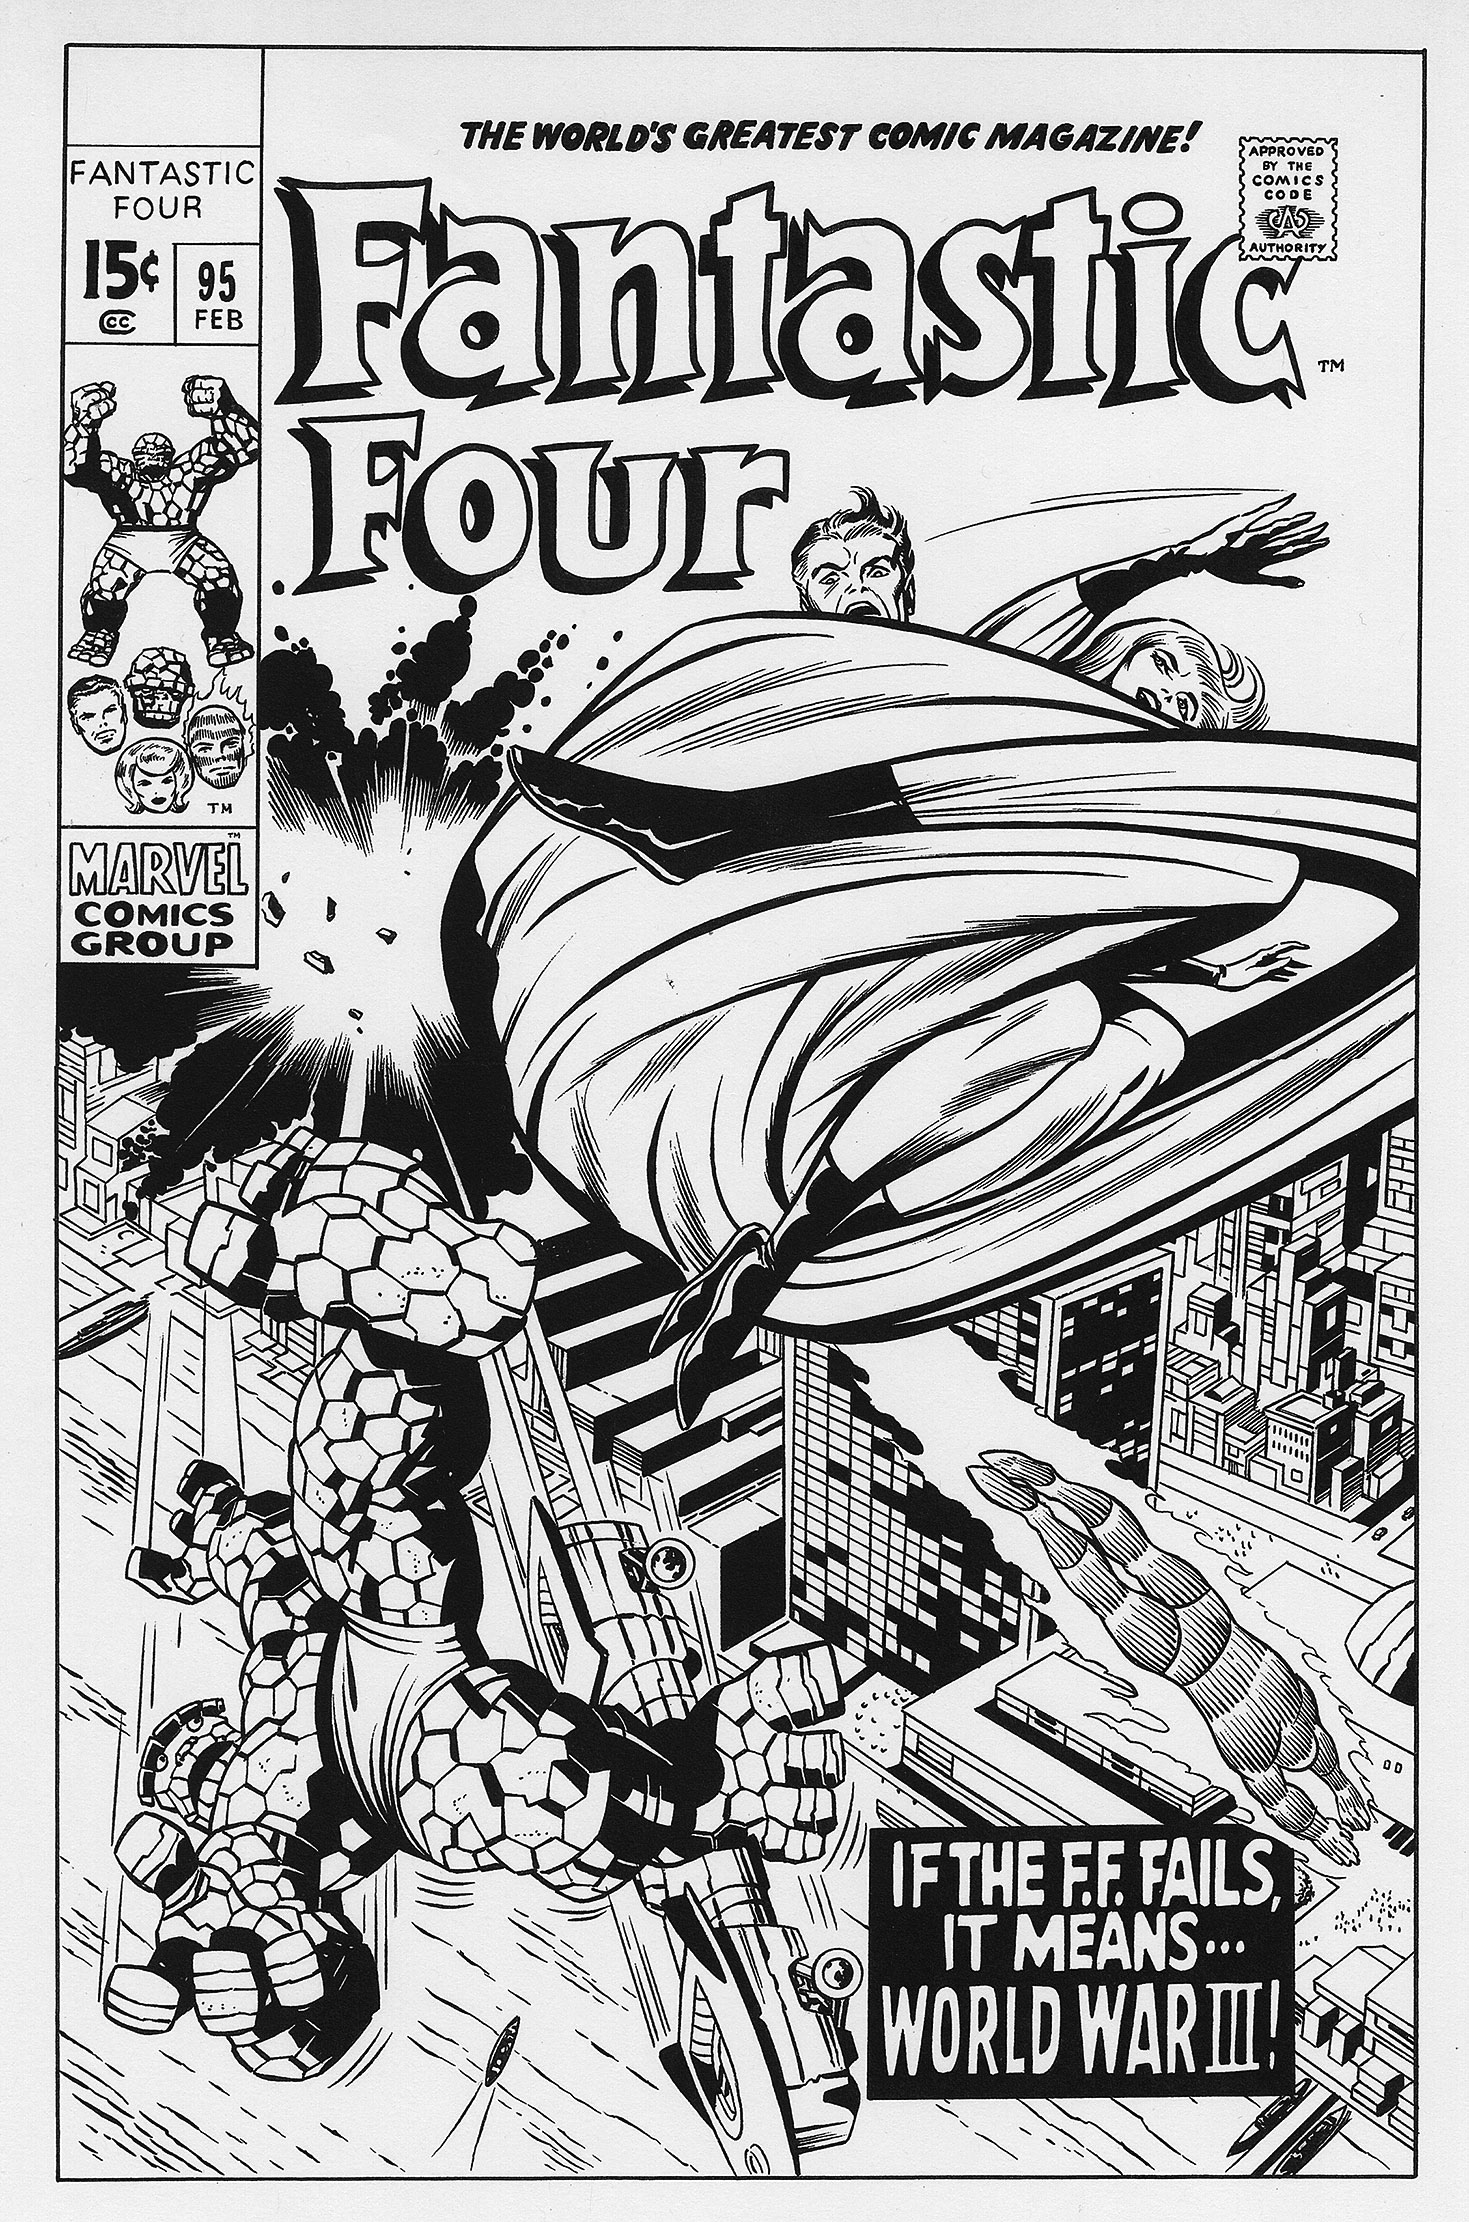 Cover art recreation Kirby Fantastic Four 95